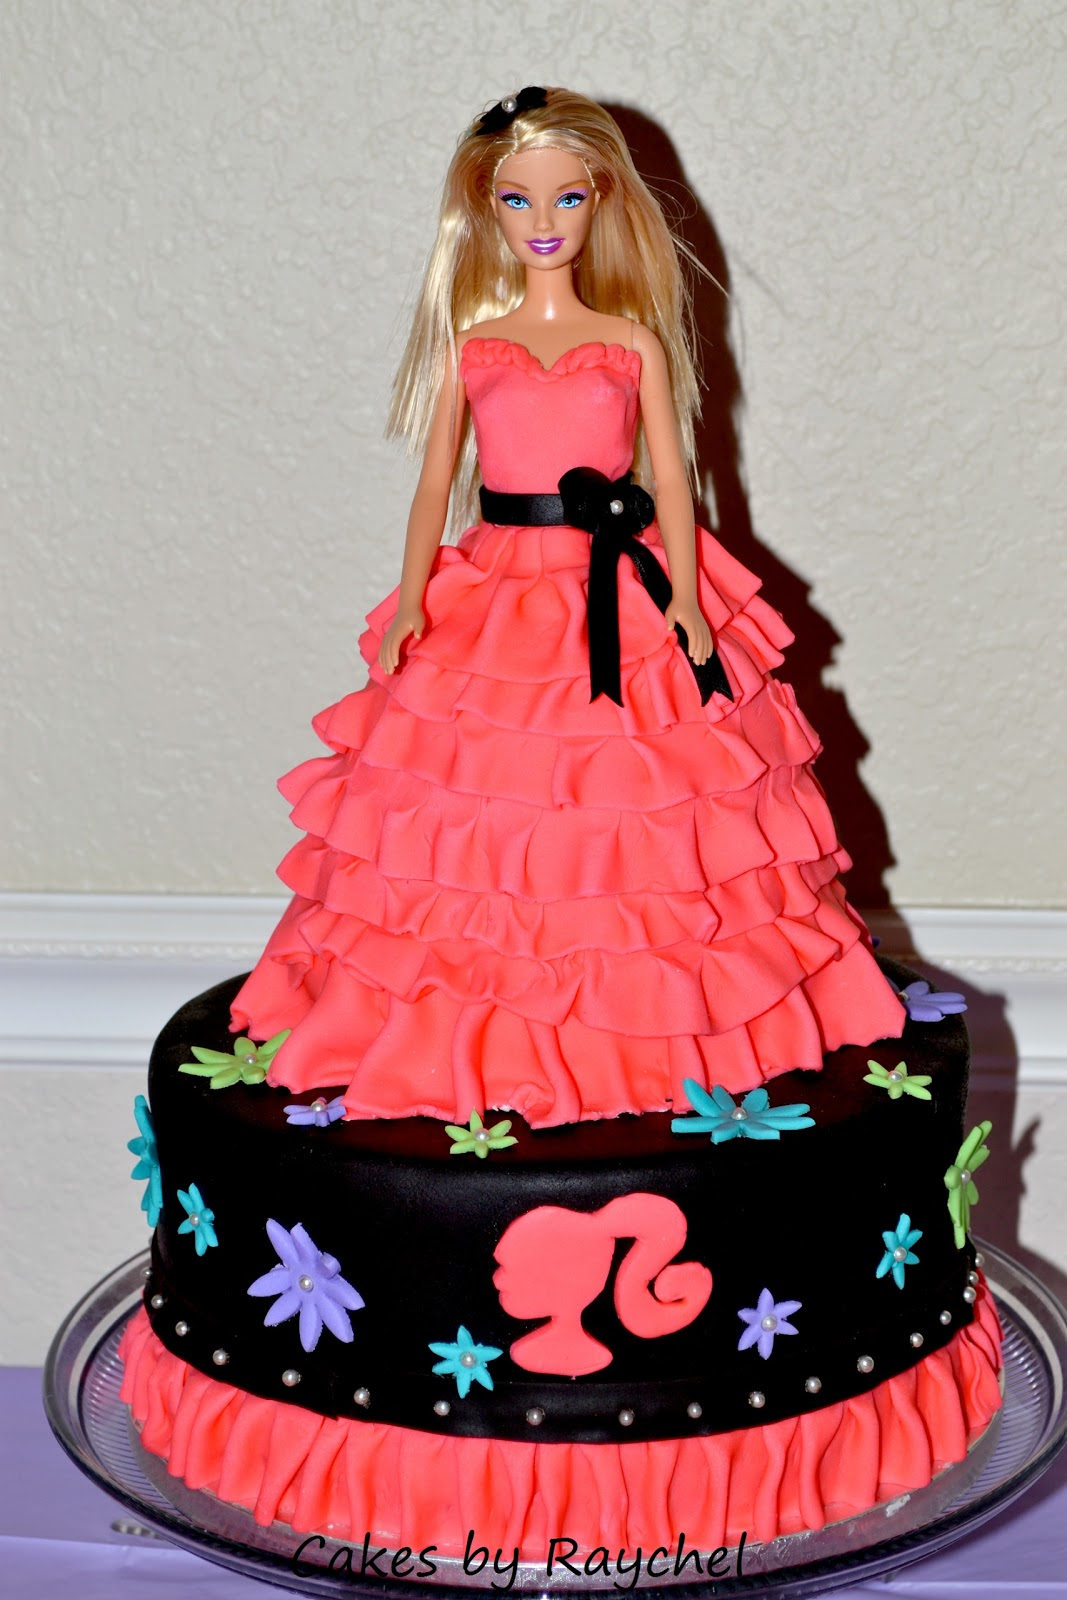 Cake Images Barbie : My Creative Way: Fondant Barbie Ruffle Cake. All Dolled Up ...